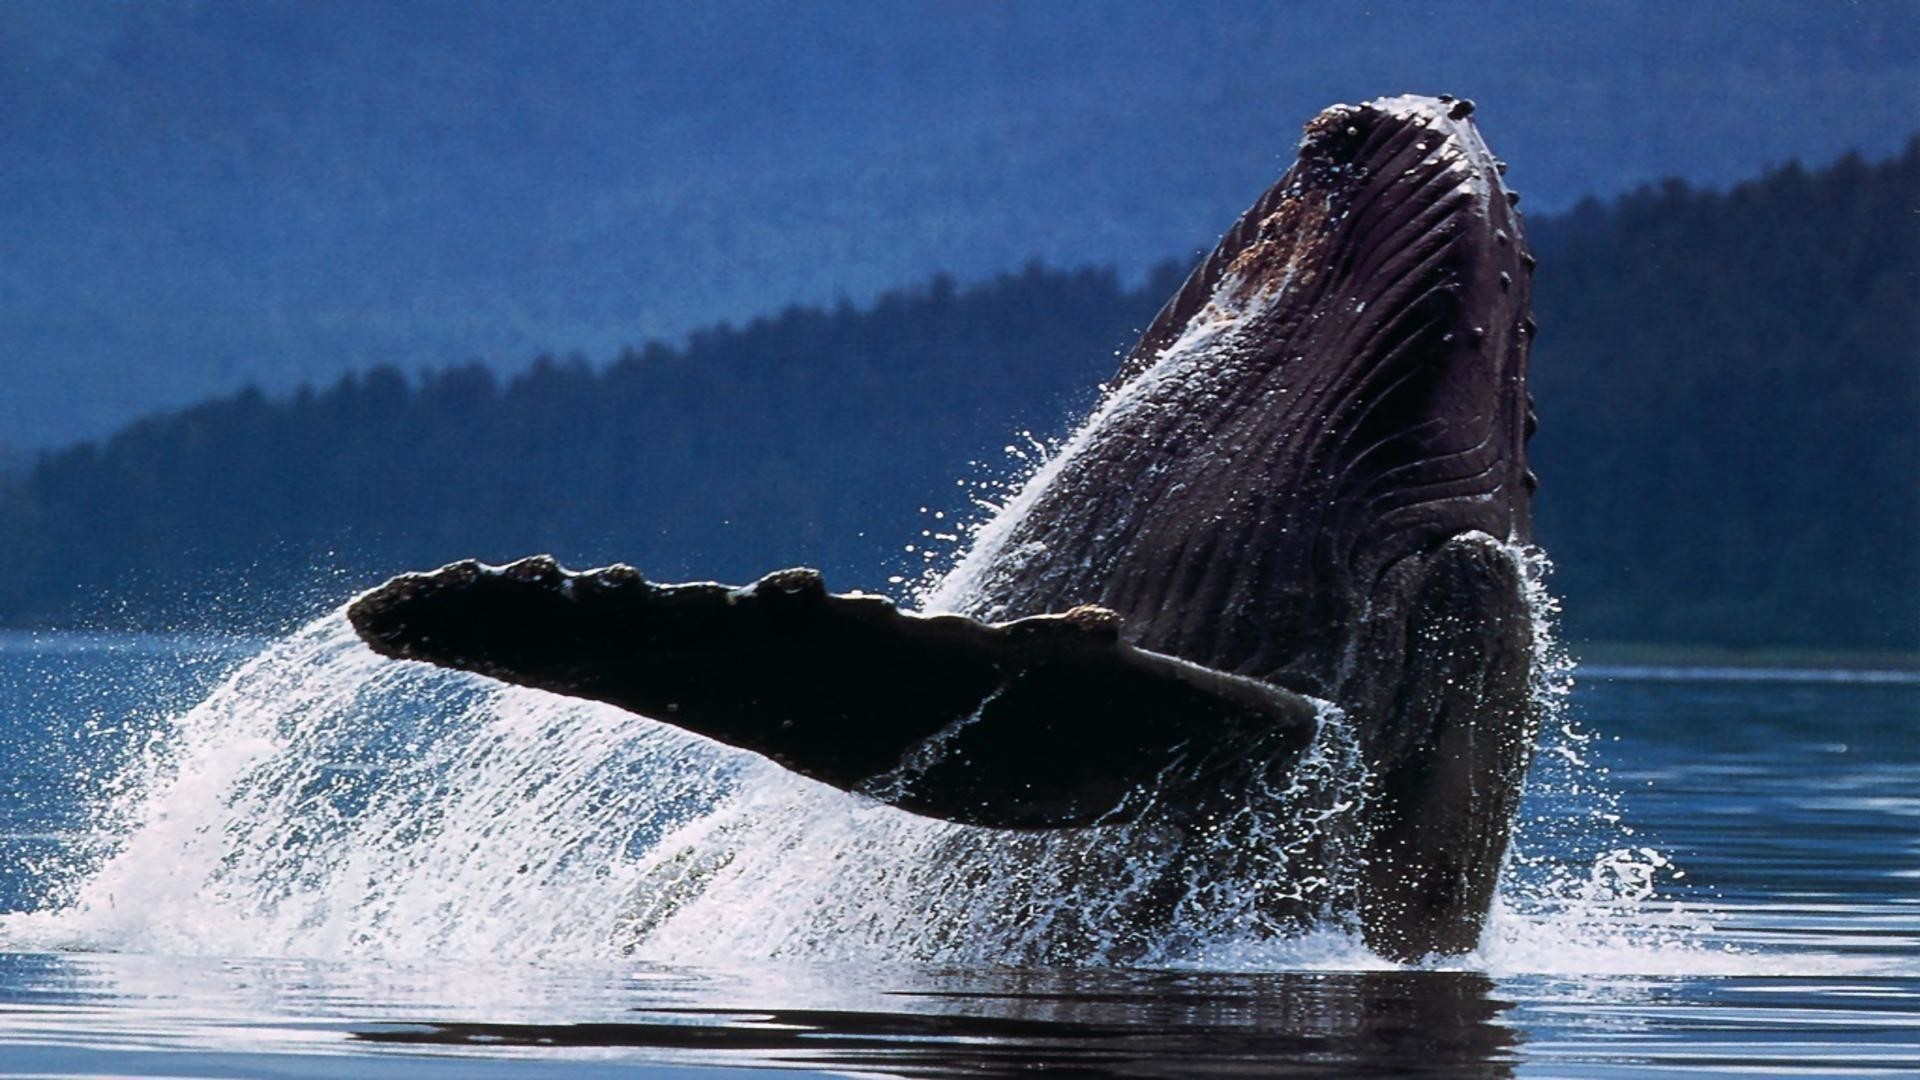 Whale Wallpapers For Desktop 57 Images